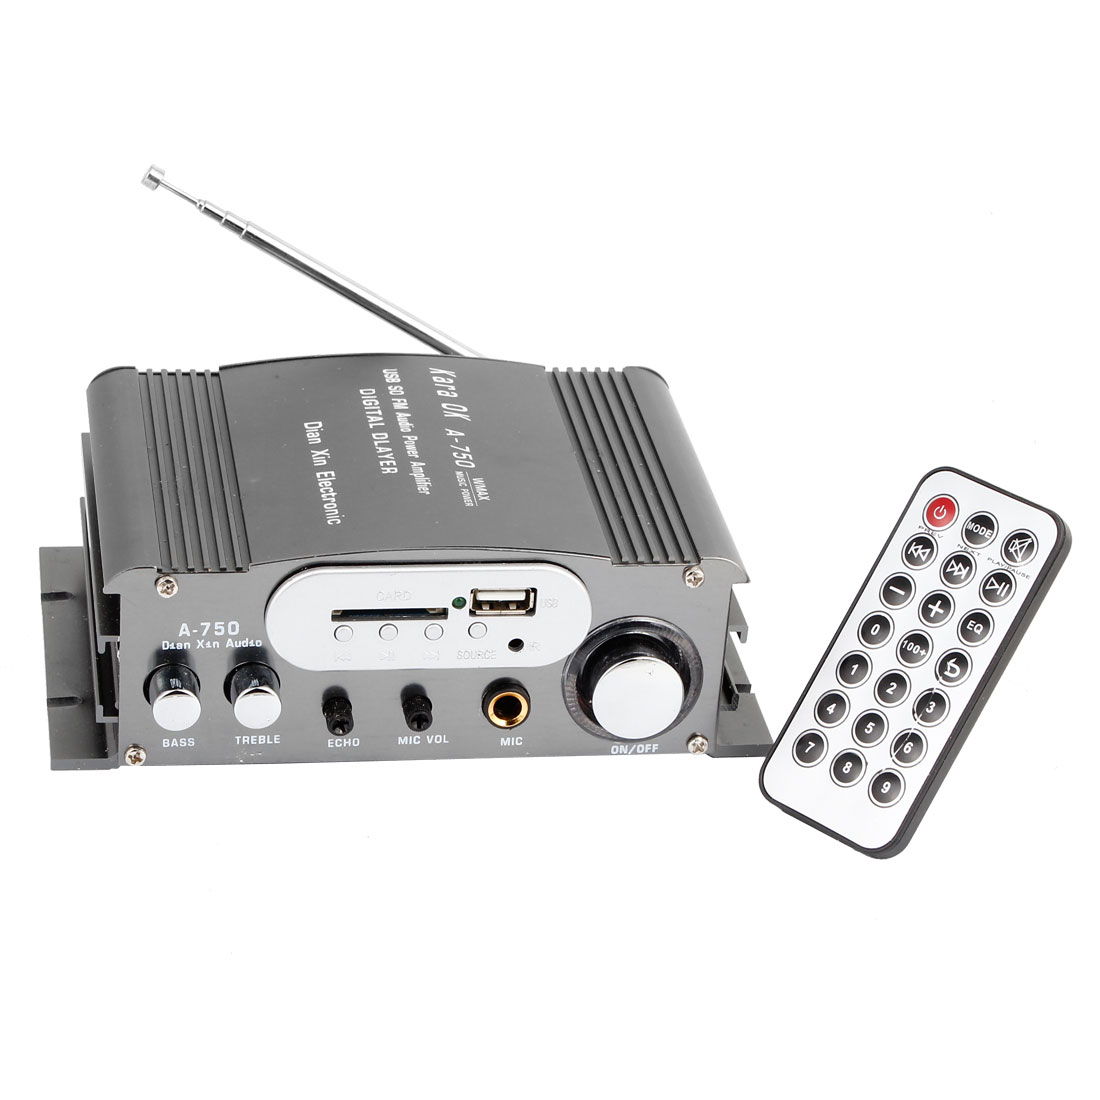 DC 12-18V 20W Car Auto FM Radio Audio Amplifier Gray w Remote Controller